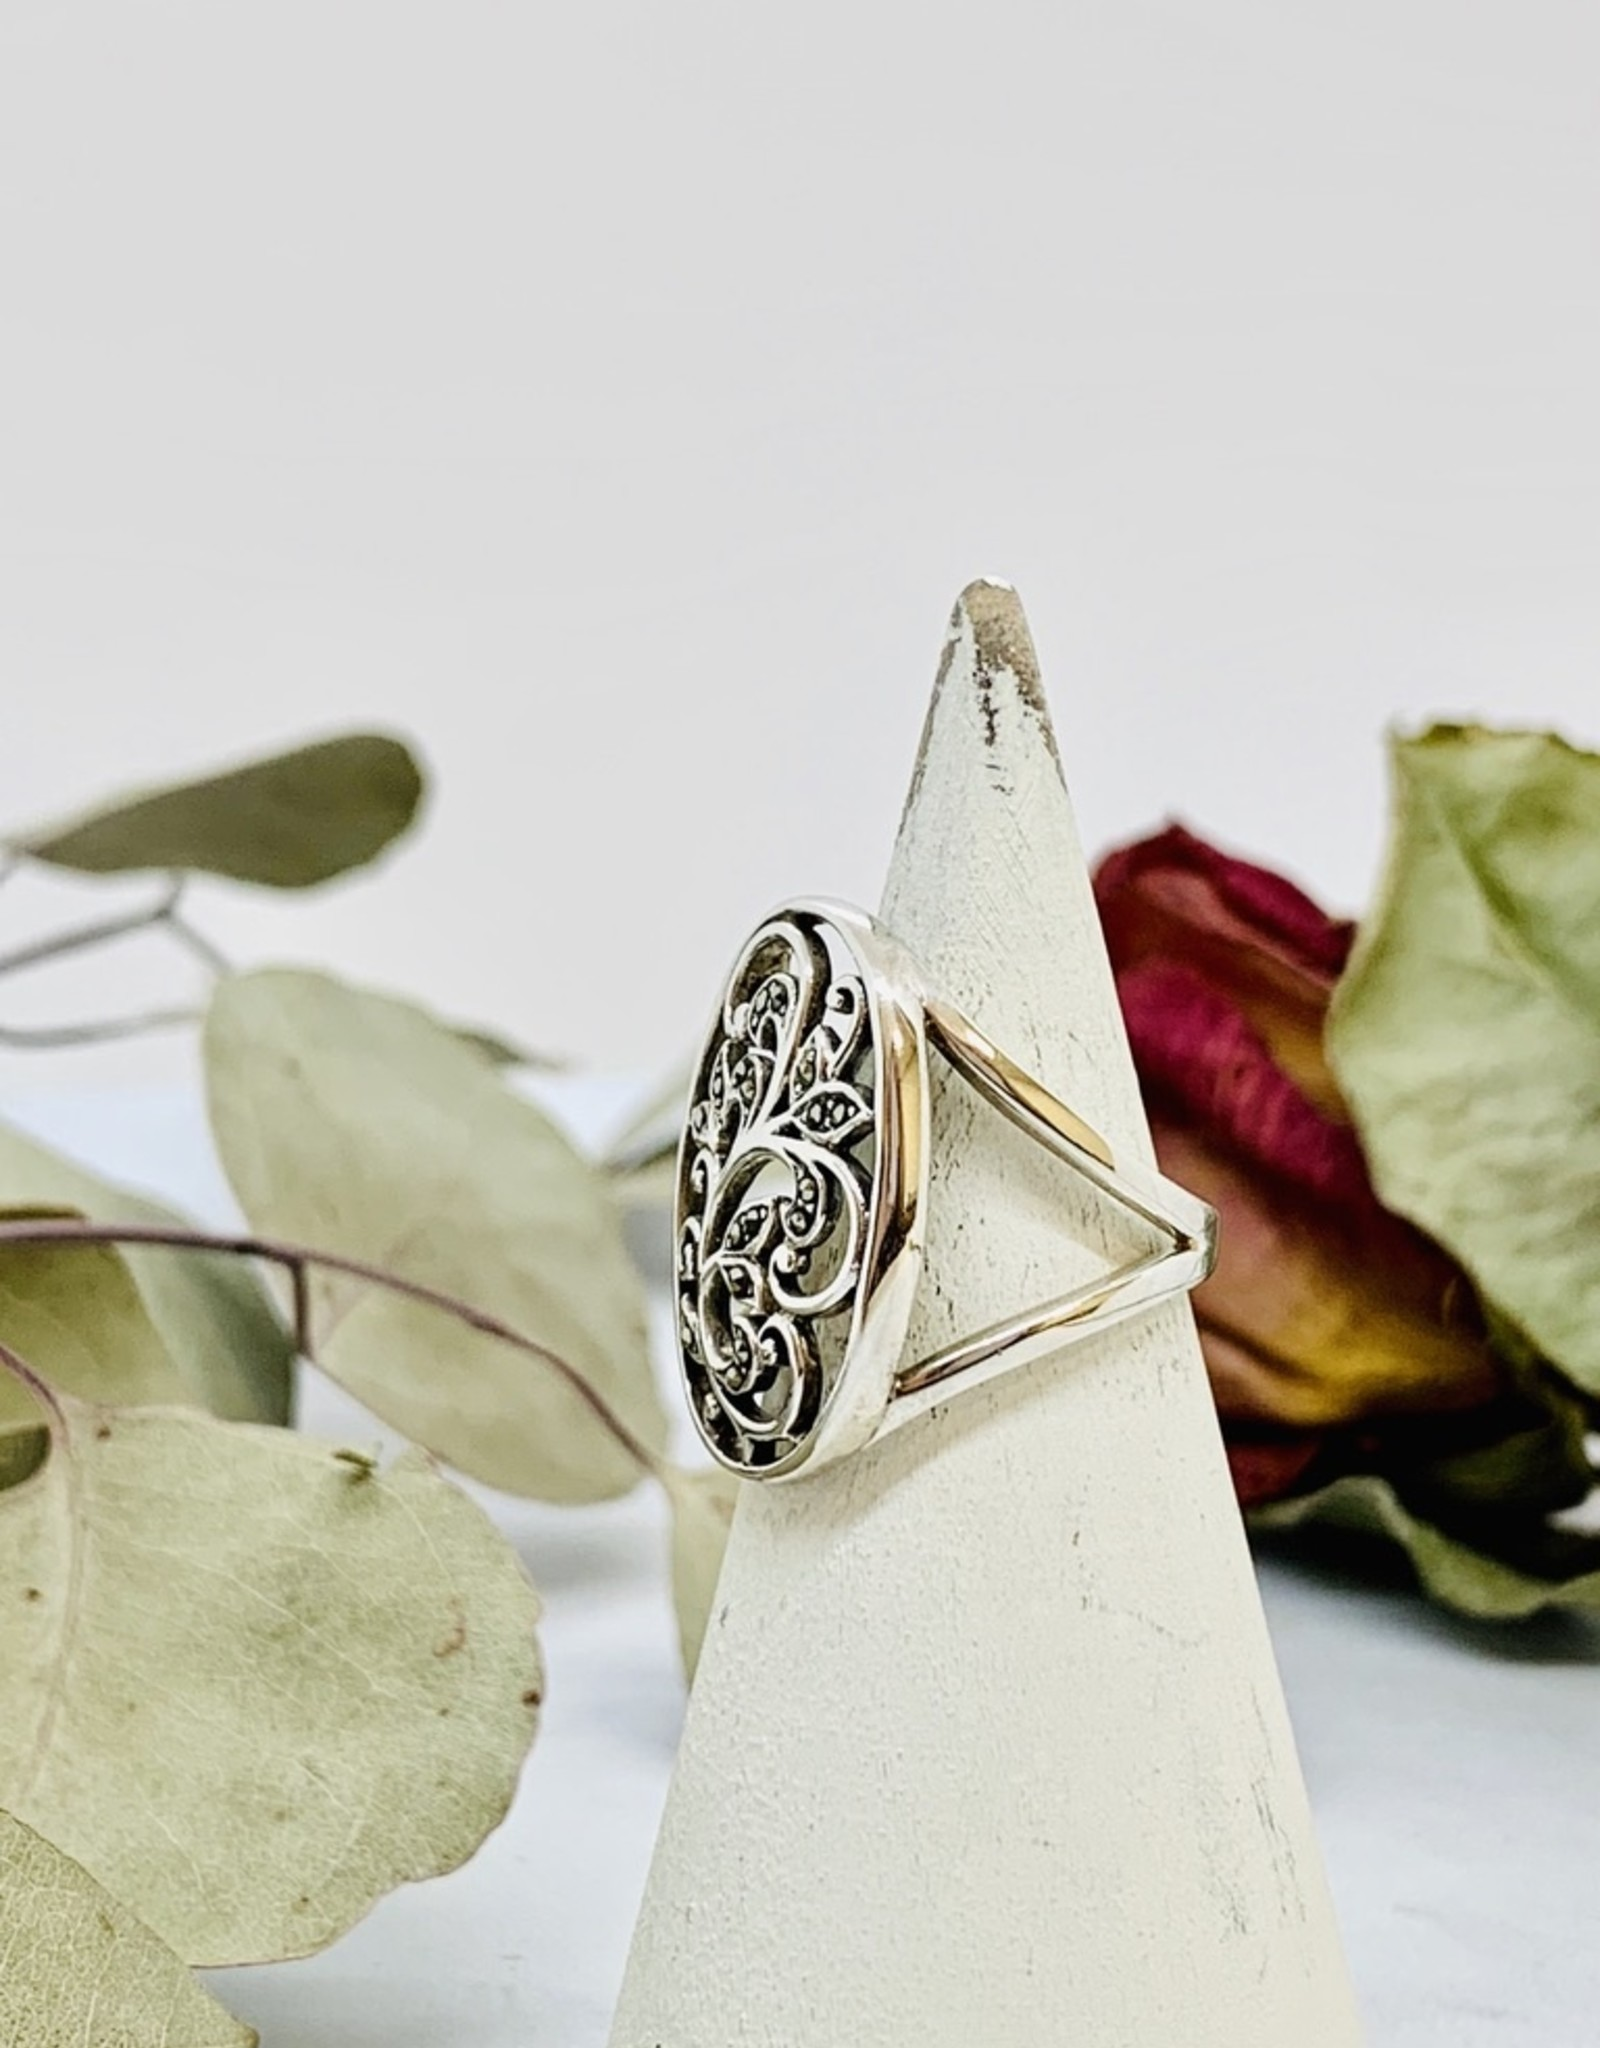 Sterling Silver and Marcasite Ring - INDY29136